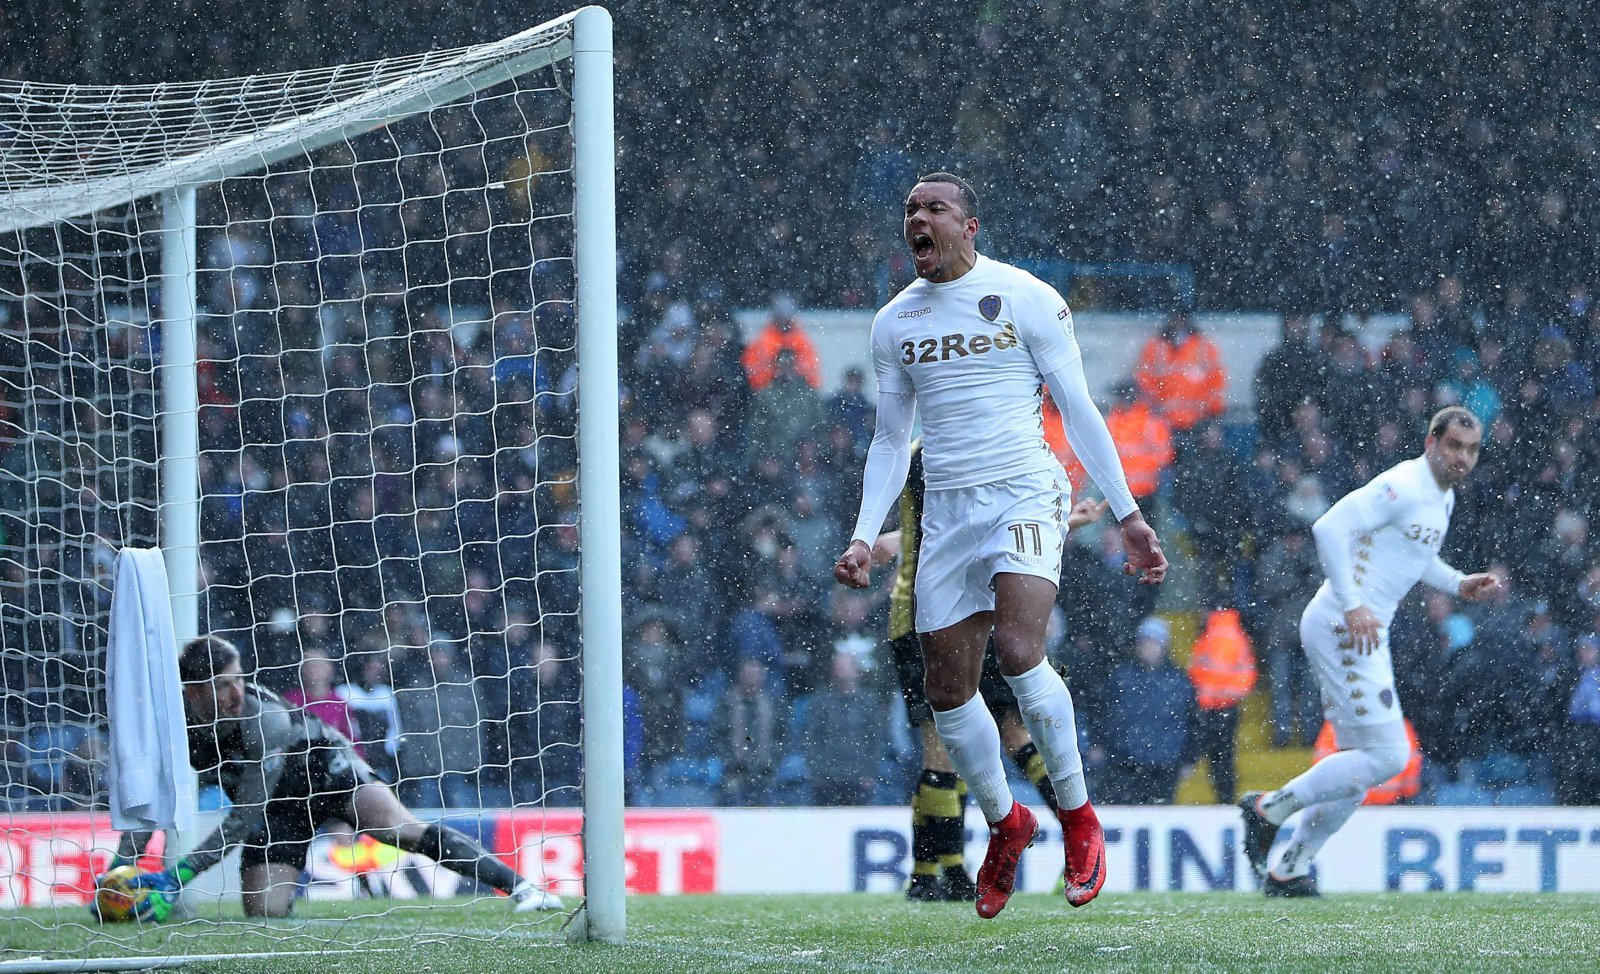 Jay-Roy Grot simply must take a leaf out of Klich's book to make the grade at Leeds